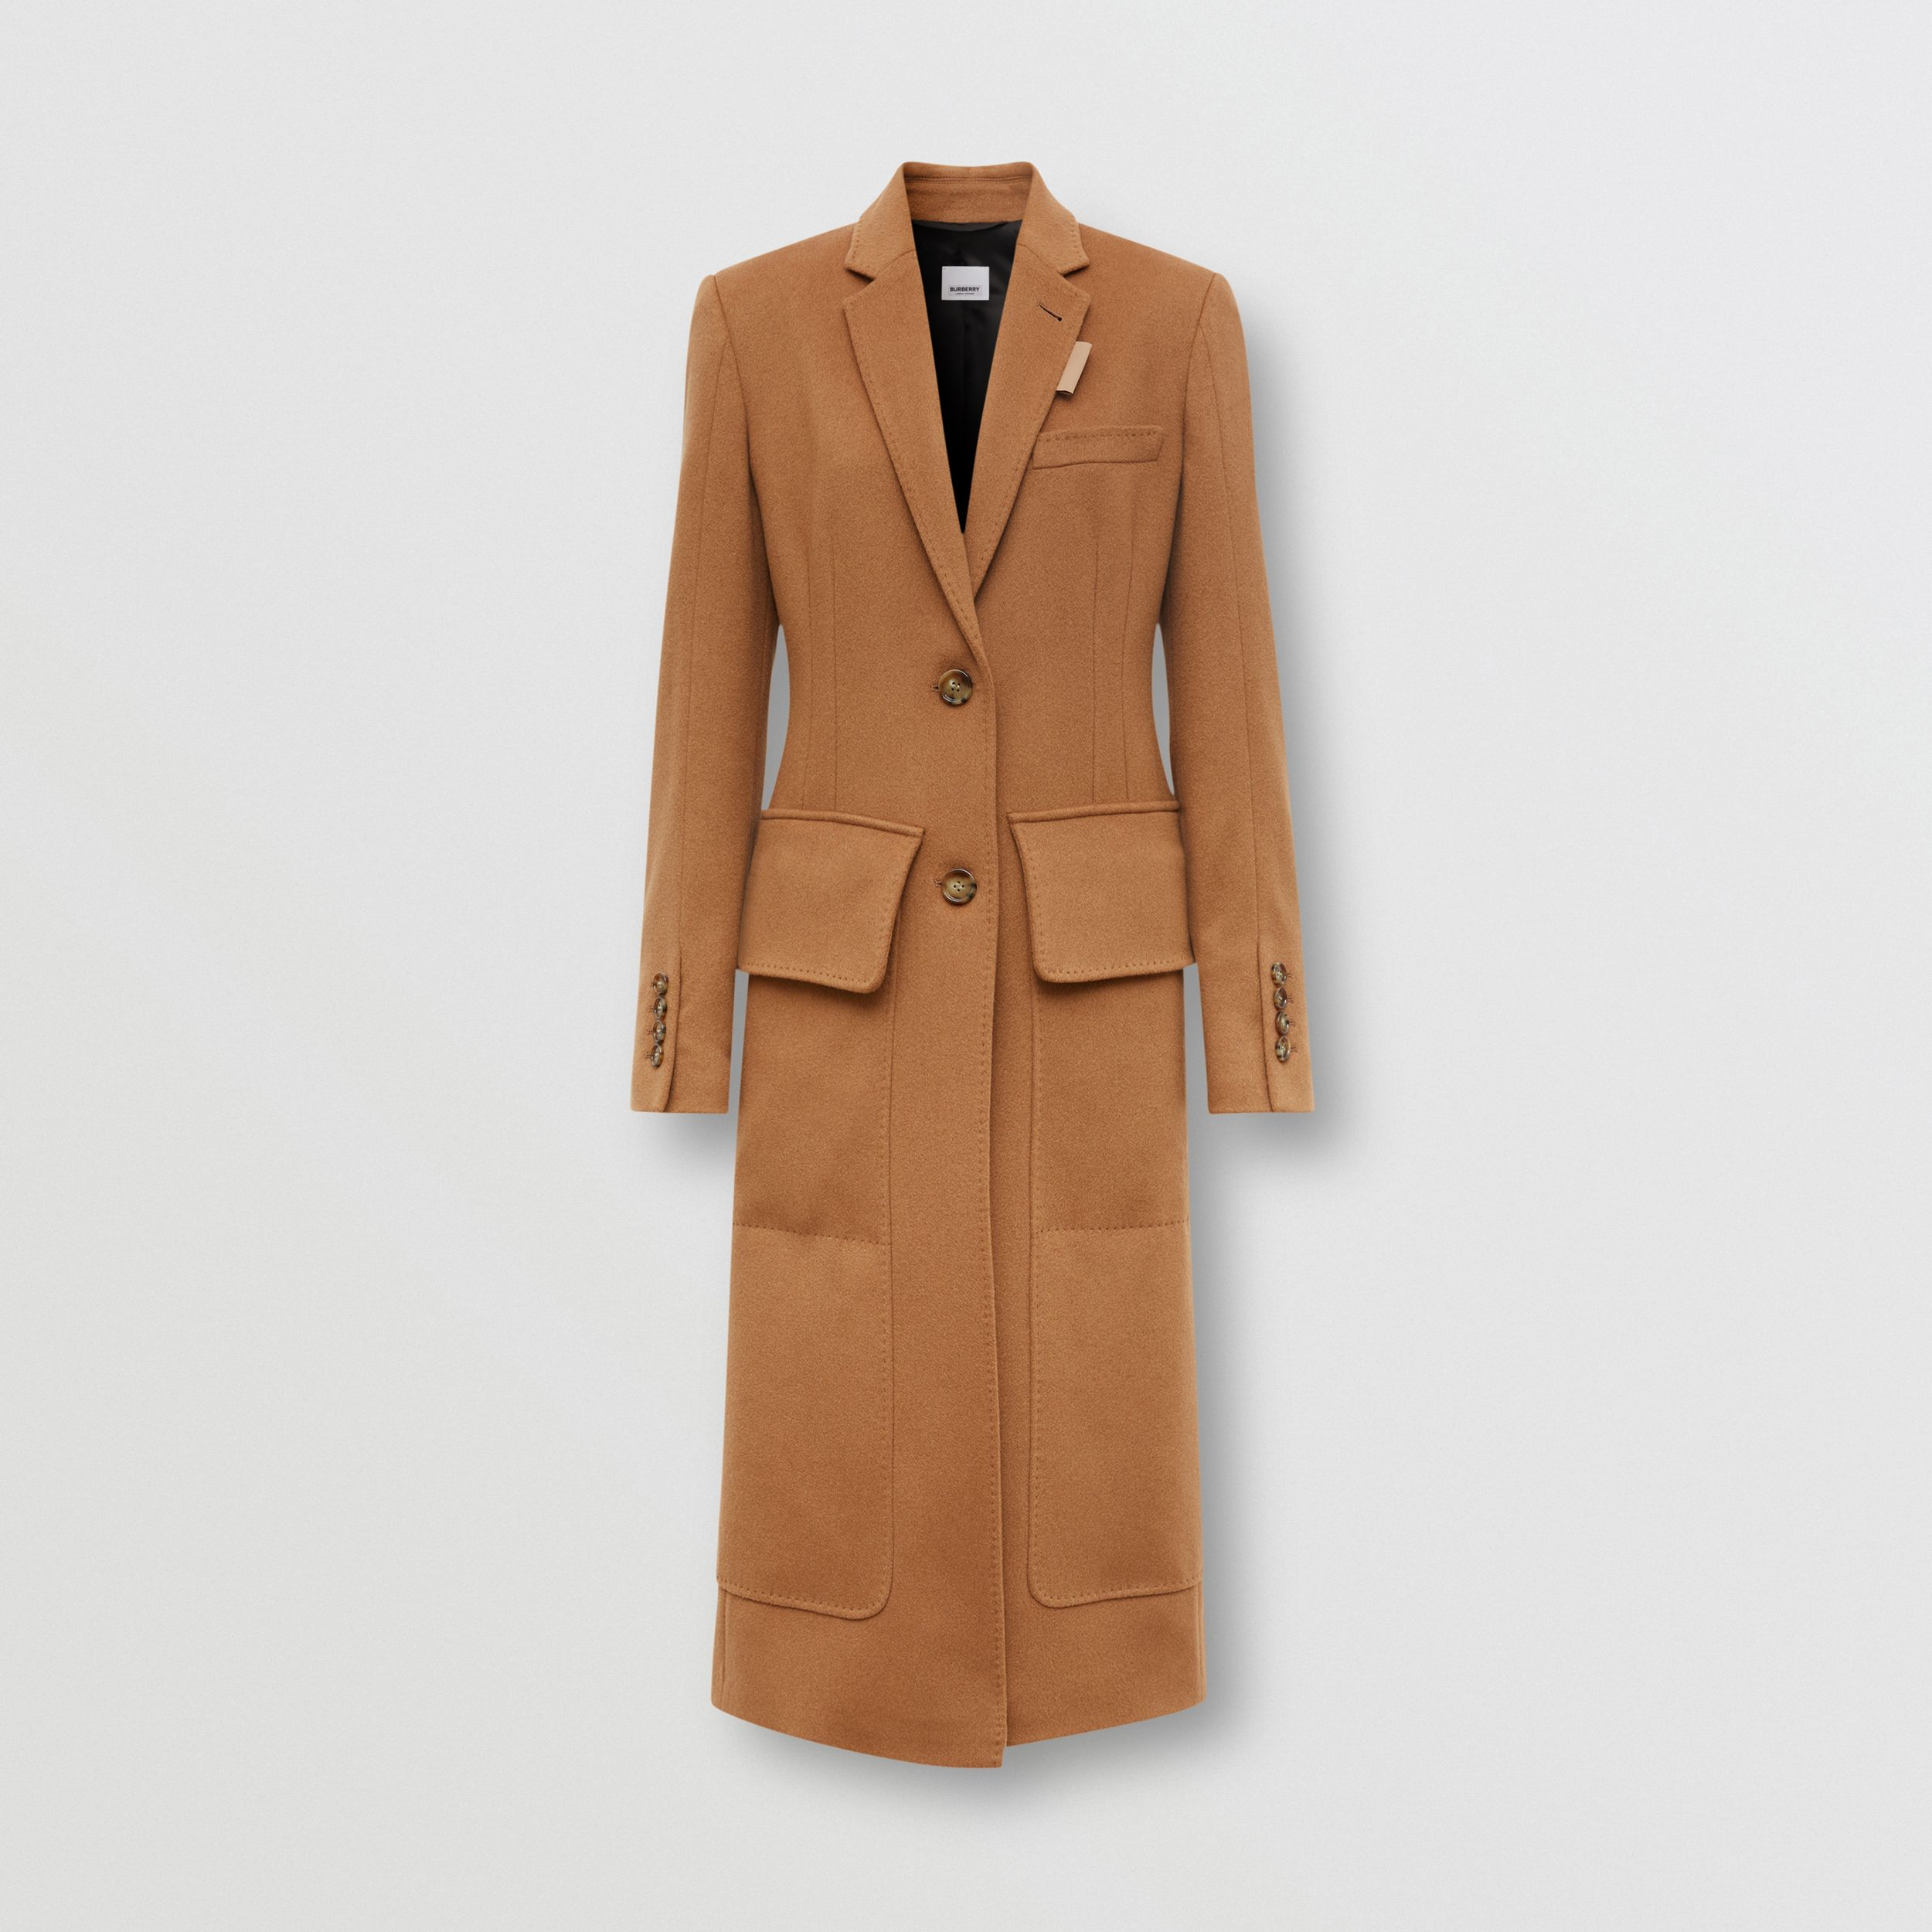 Cashmere Tailored Coat in Bronze - Women | Burberry - 4